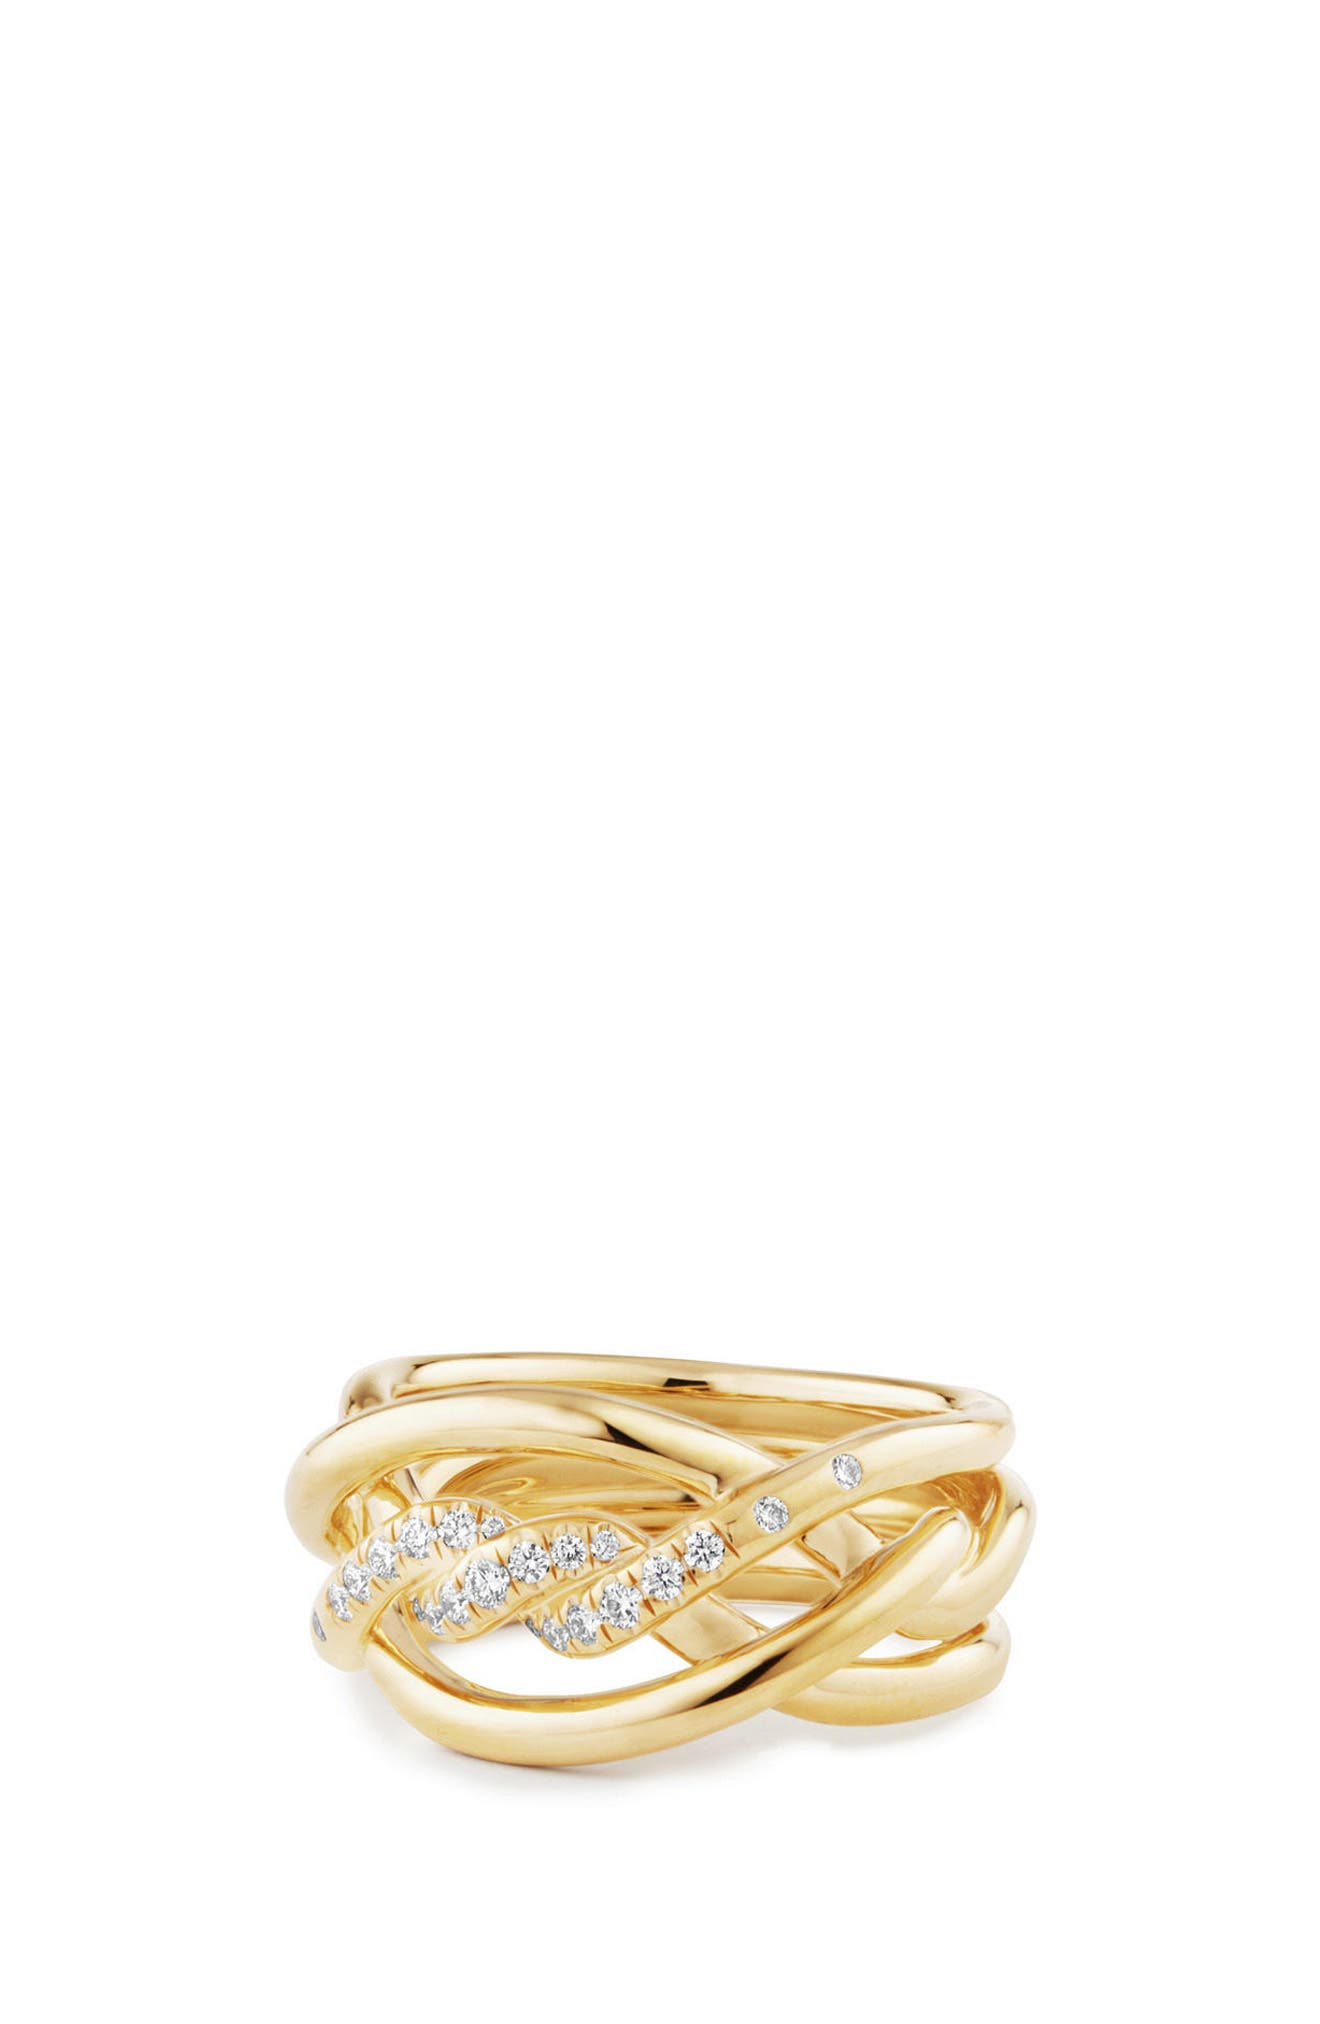 Continuance Ring with Diamonds in 18K Gold, 11.5mm,                         Main,                         color, YELLOW GOLD